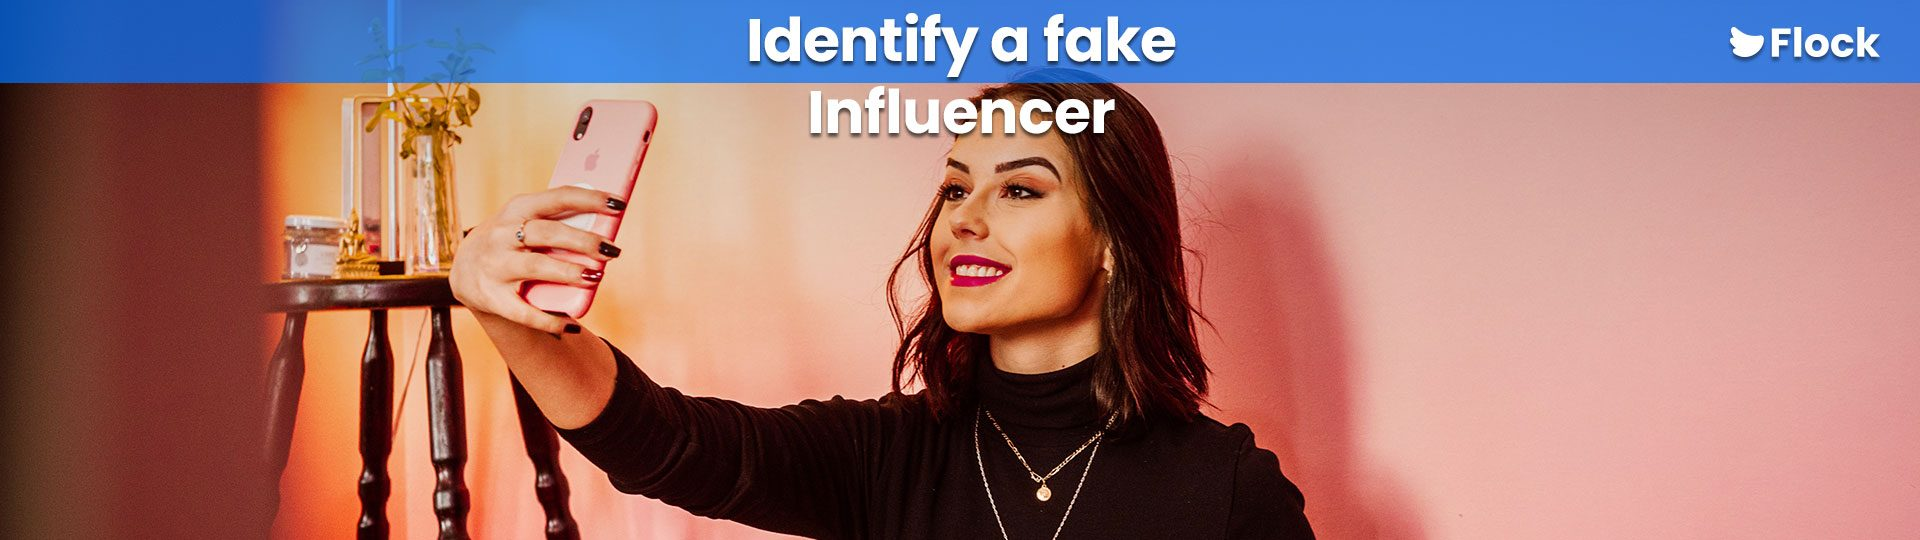 Identify a fake influencer